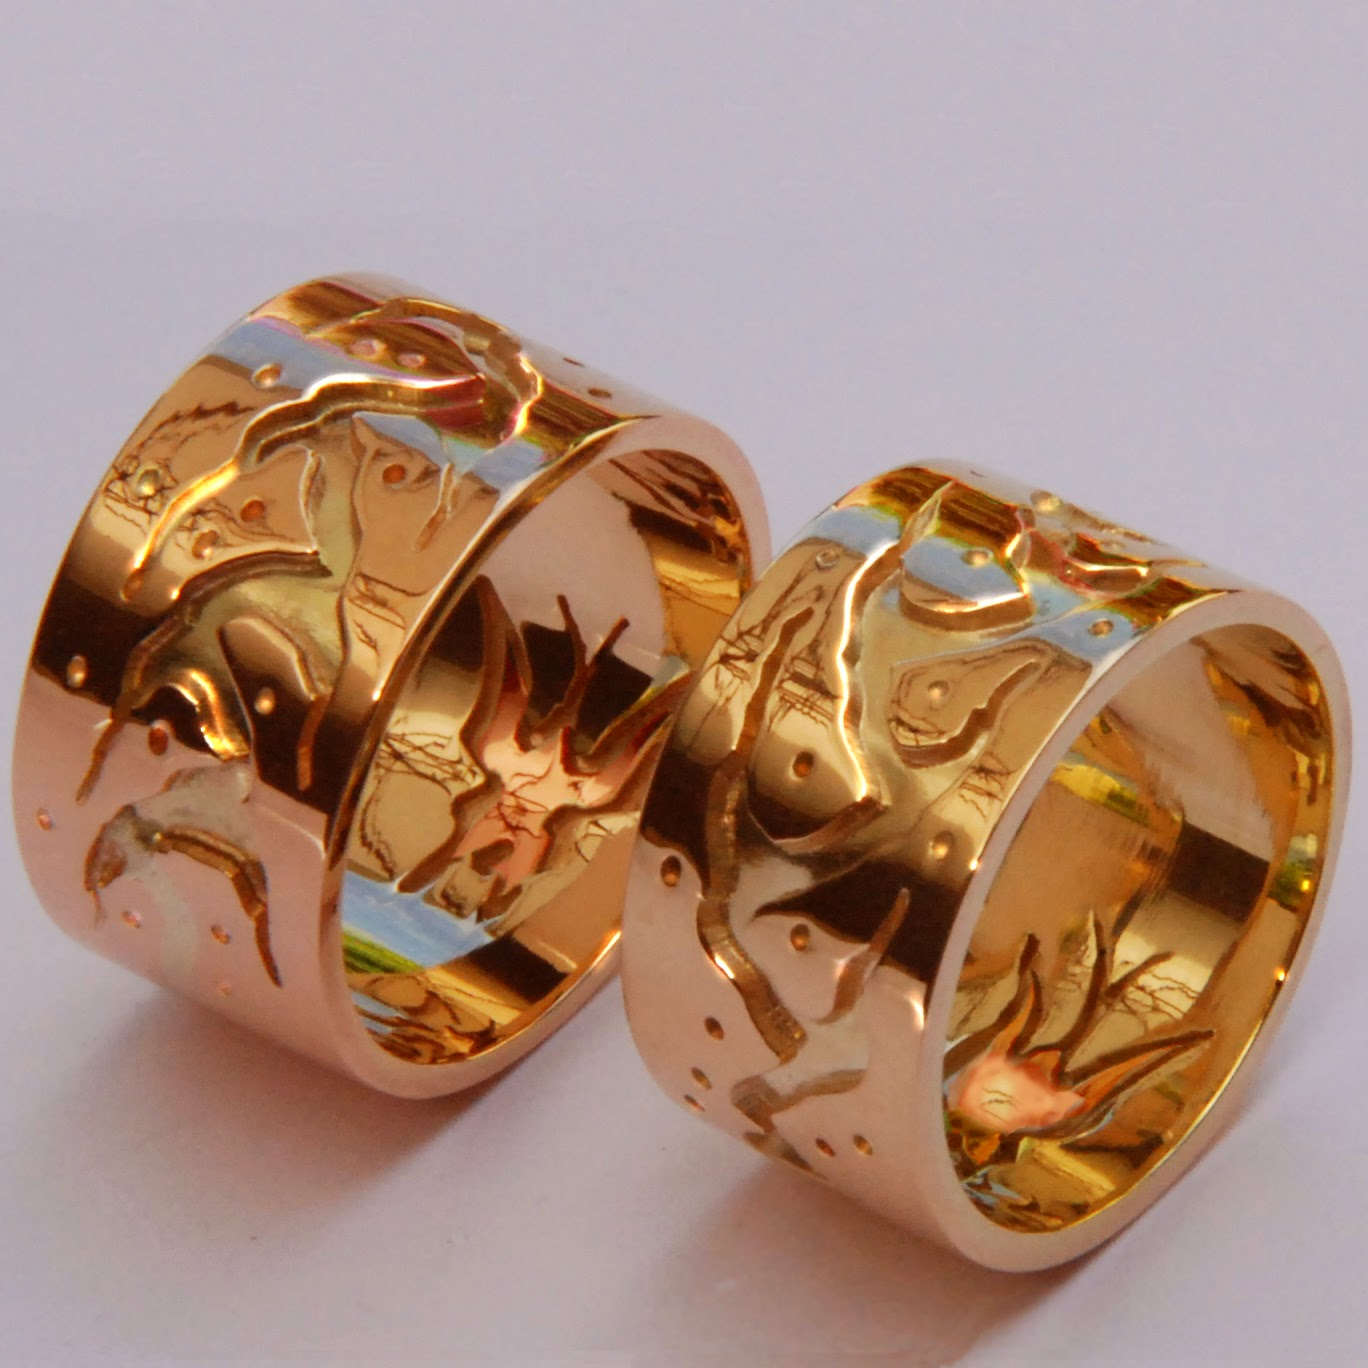 Anishinaabe wedding rings